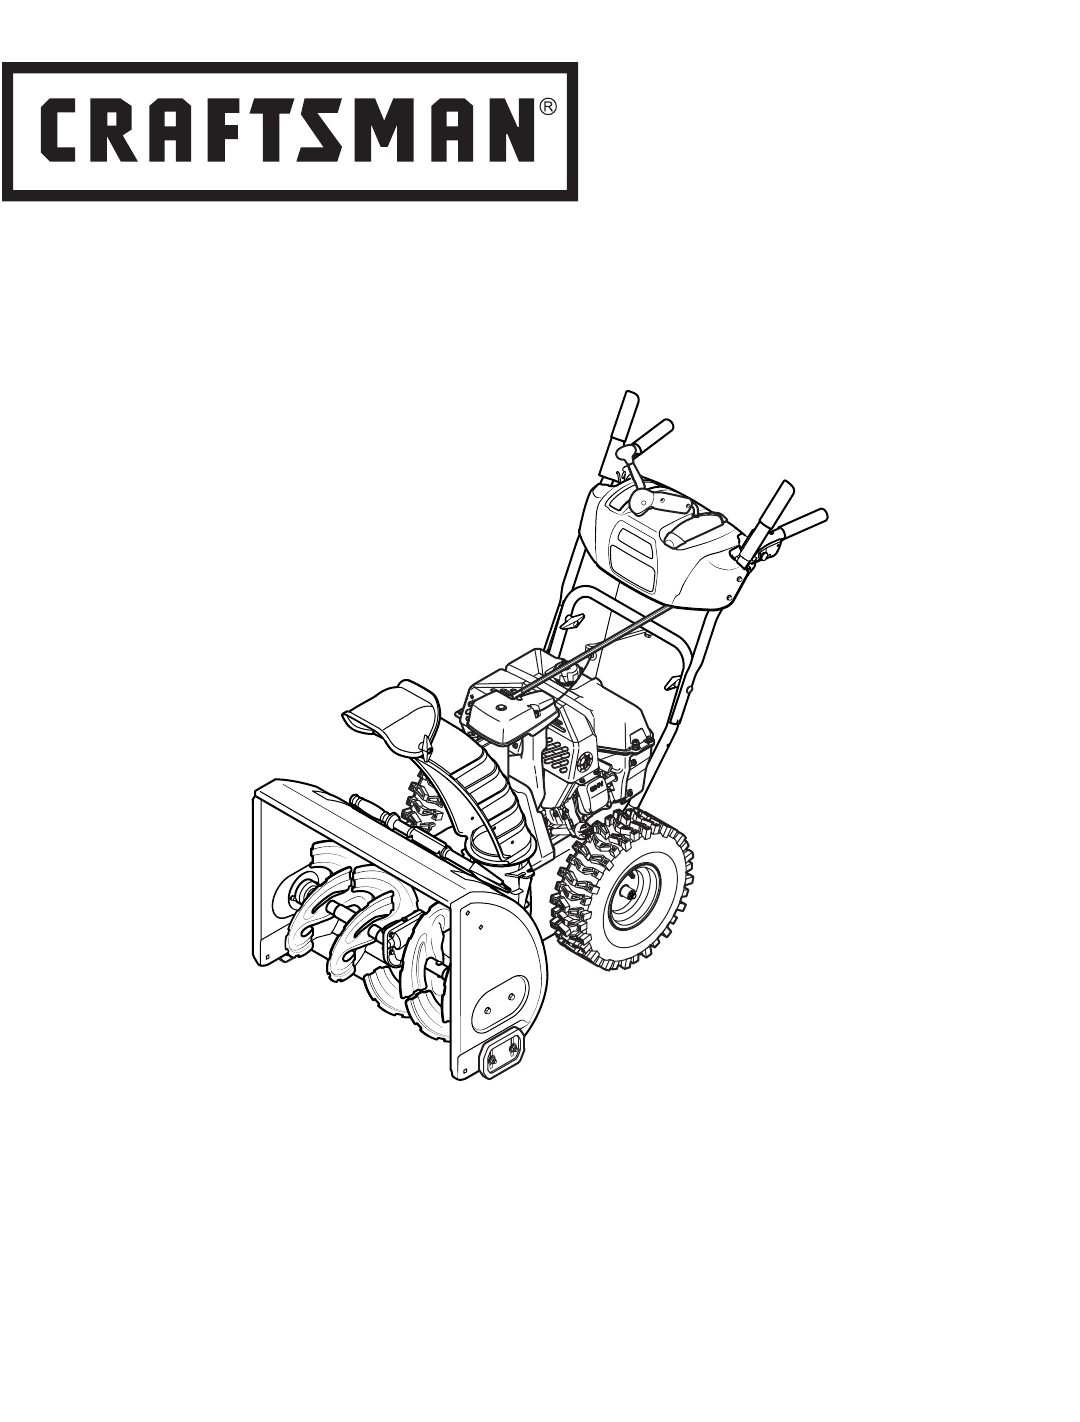 Craftsman Quiet 208Cc Dual Stage Snowblower Owners Manual